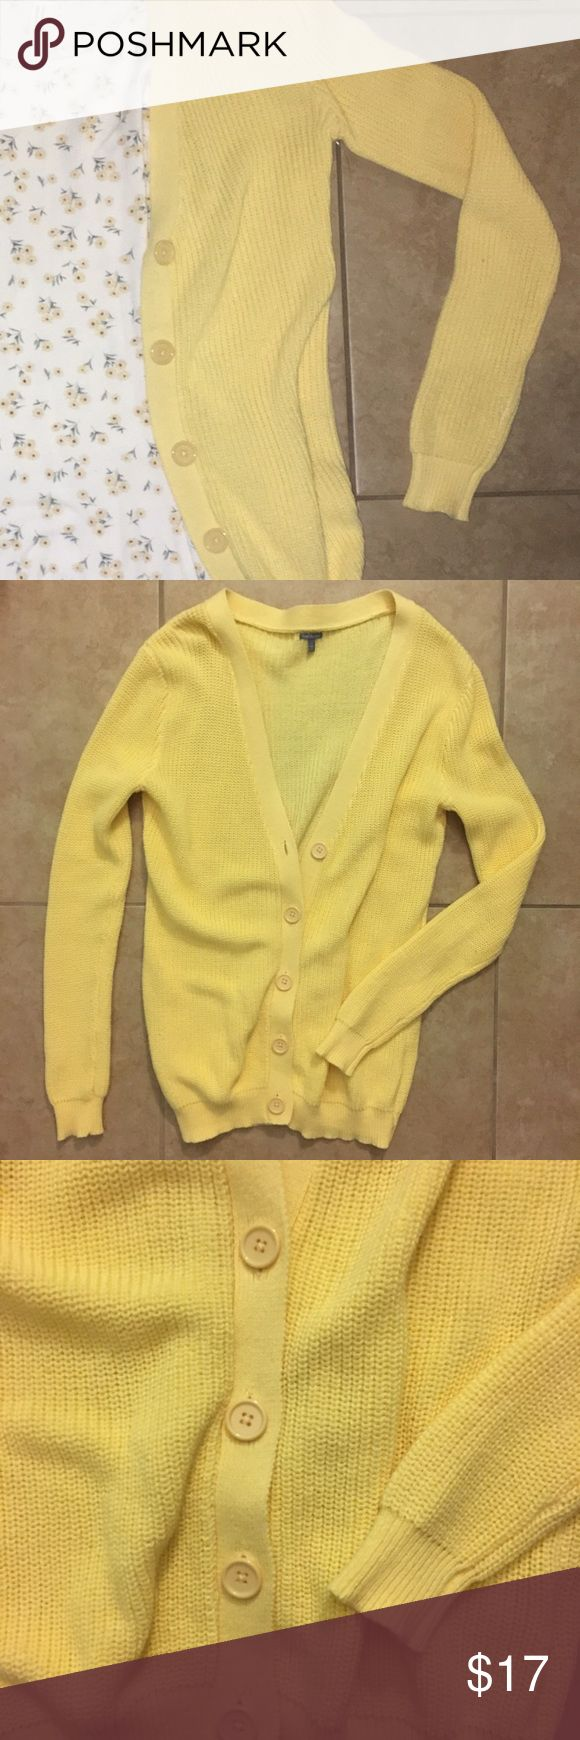 Pastel Yellow Cardigan This cute yellow cardigan can go with so many outfits and give it the extra flare! It's so cute and soft but I've never worn it so it's new with no tags. Tagged UO just for more searches but it's actually Charlotte Russe ☀️ Urban Outfitters Sweaters Cardigans